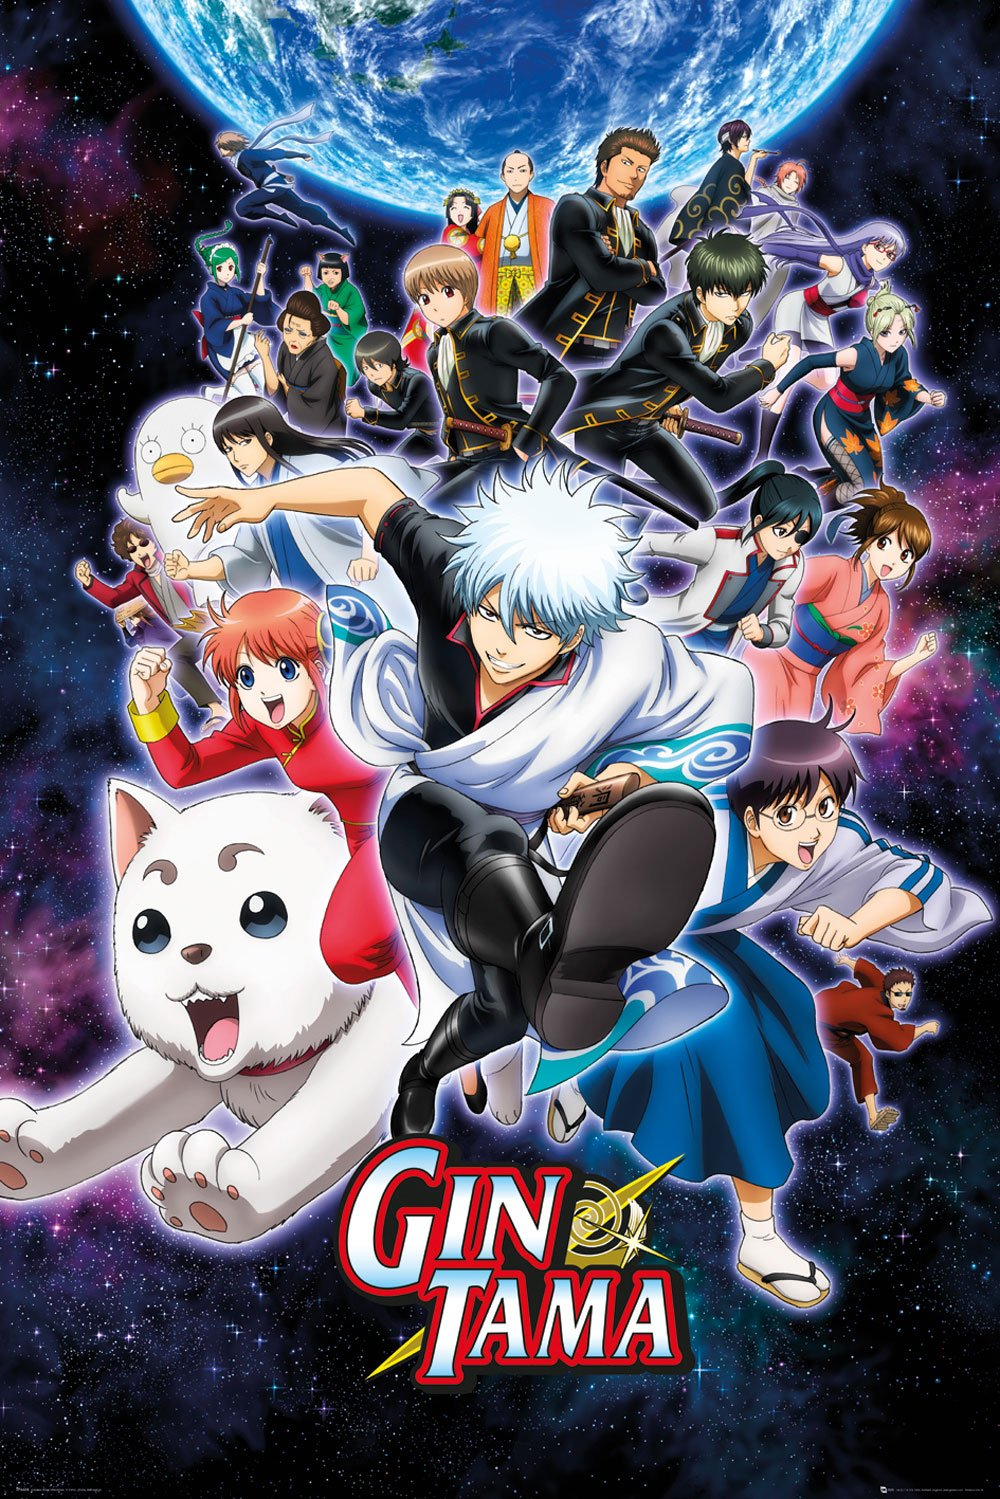 Gintama Poster Pack Key Art 61 x 91 cm (5)